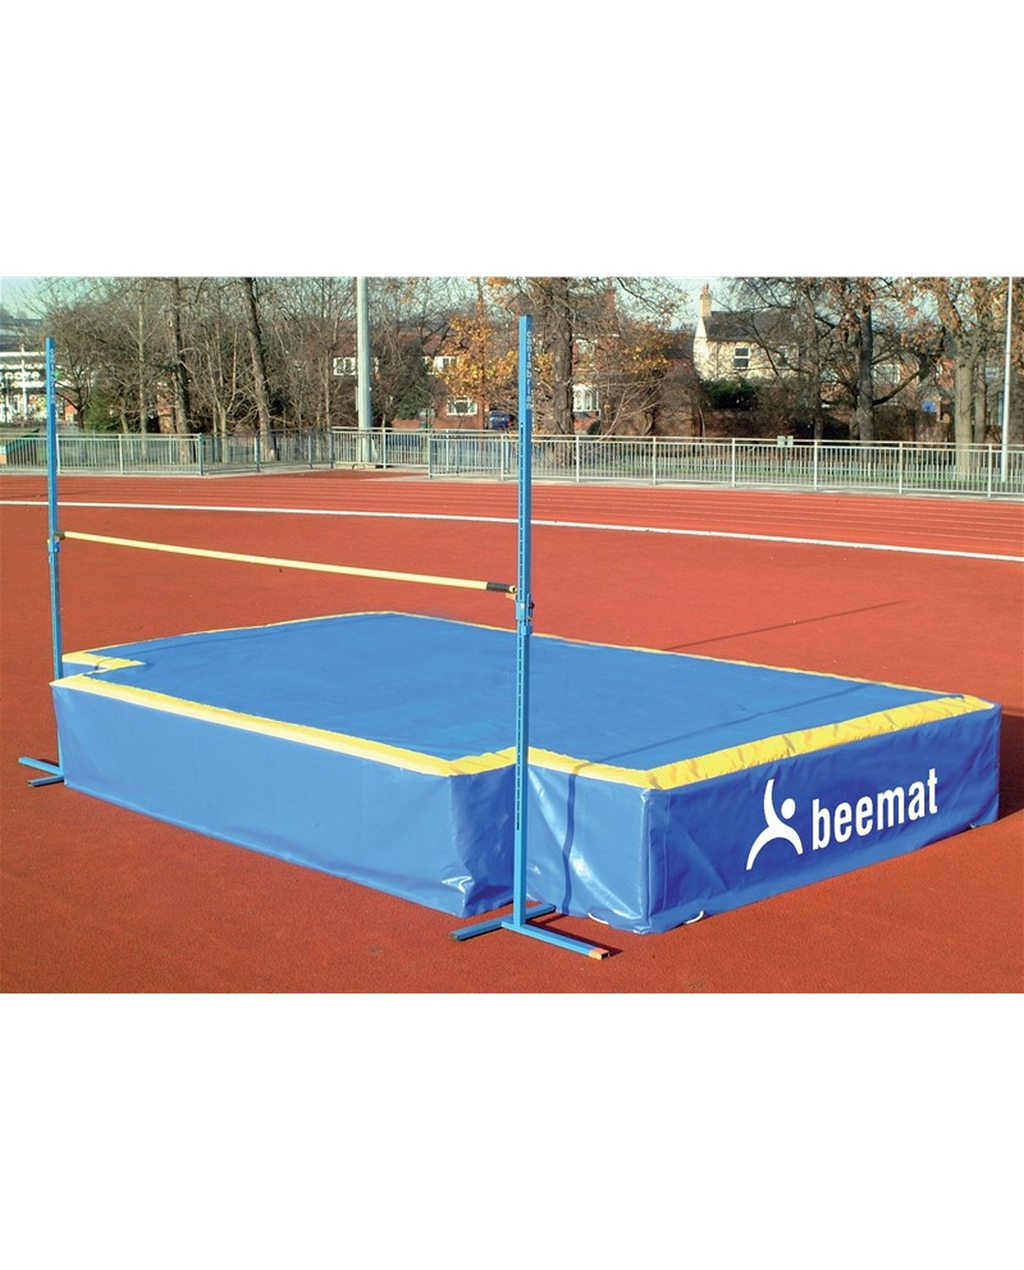 High Jump Landing Areas - Spike-Proof Wearsheet